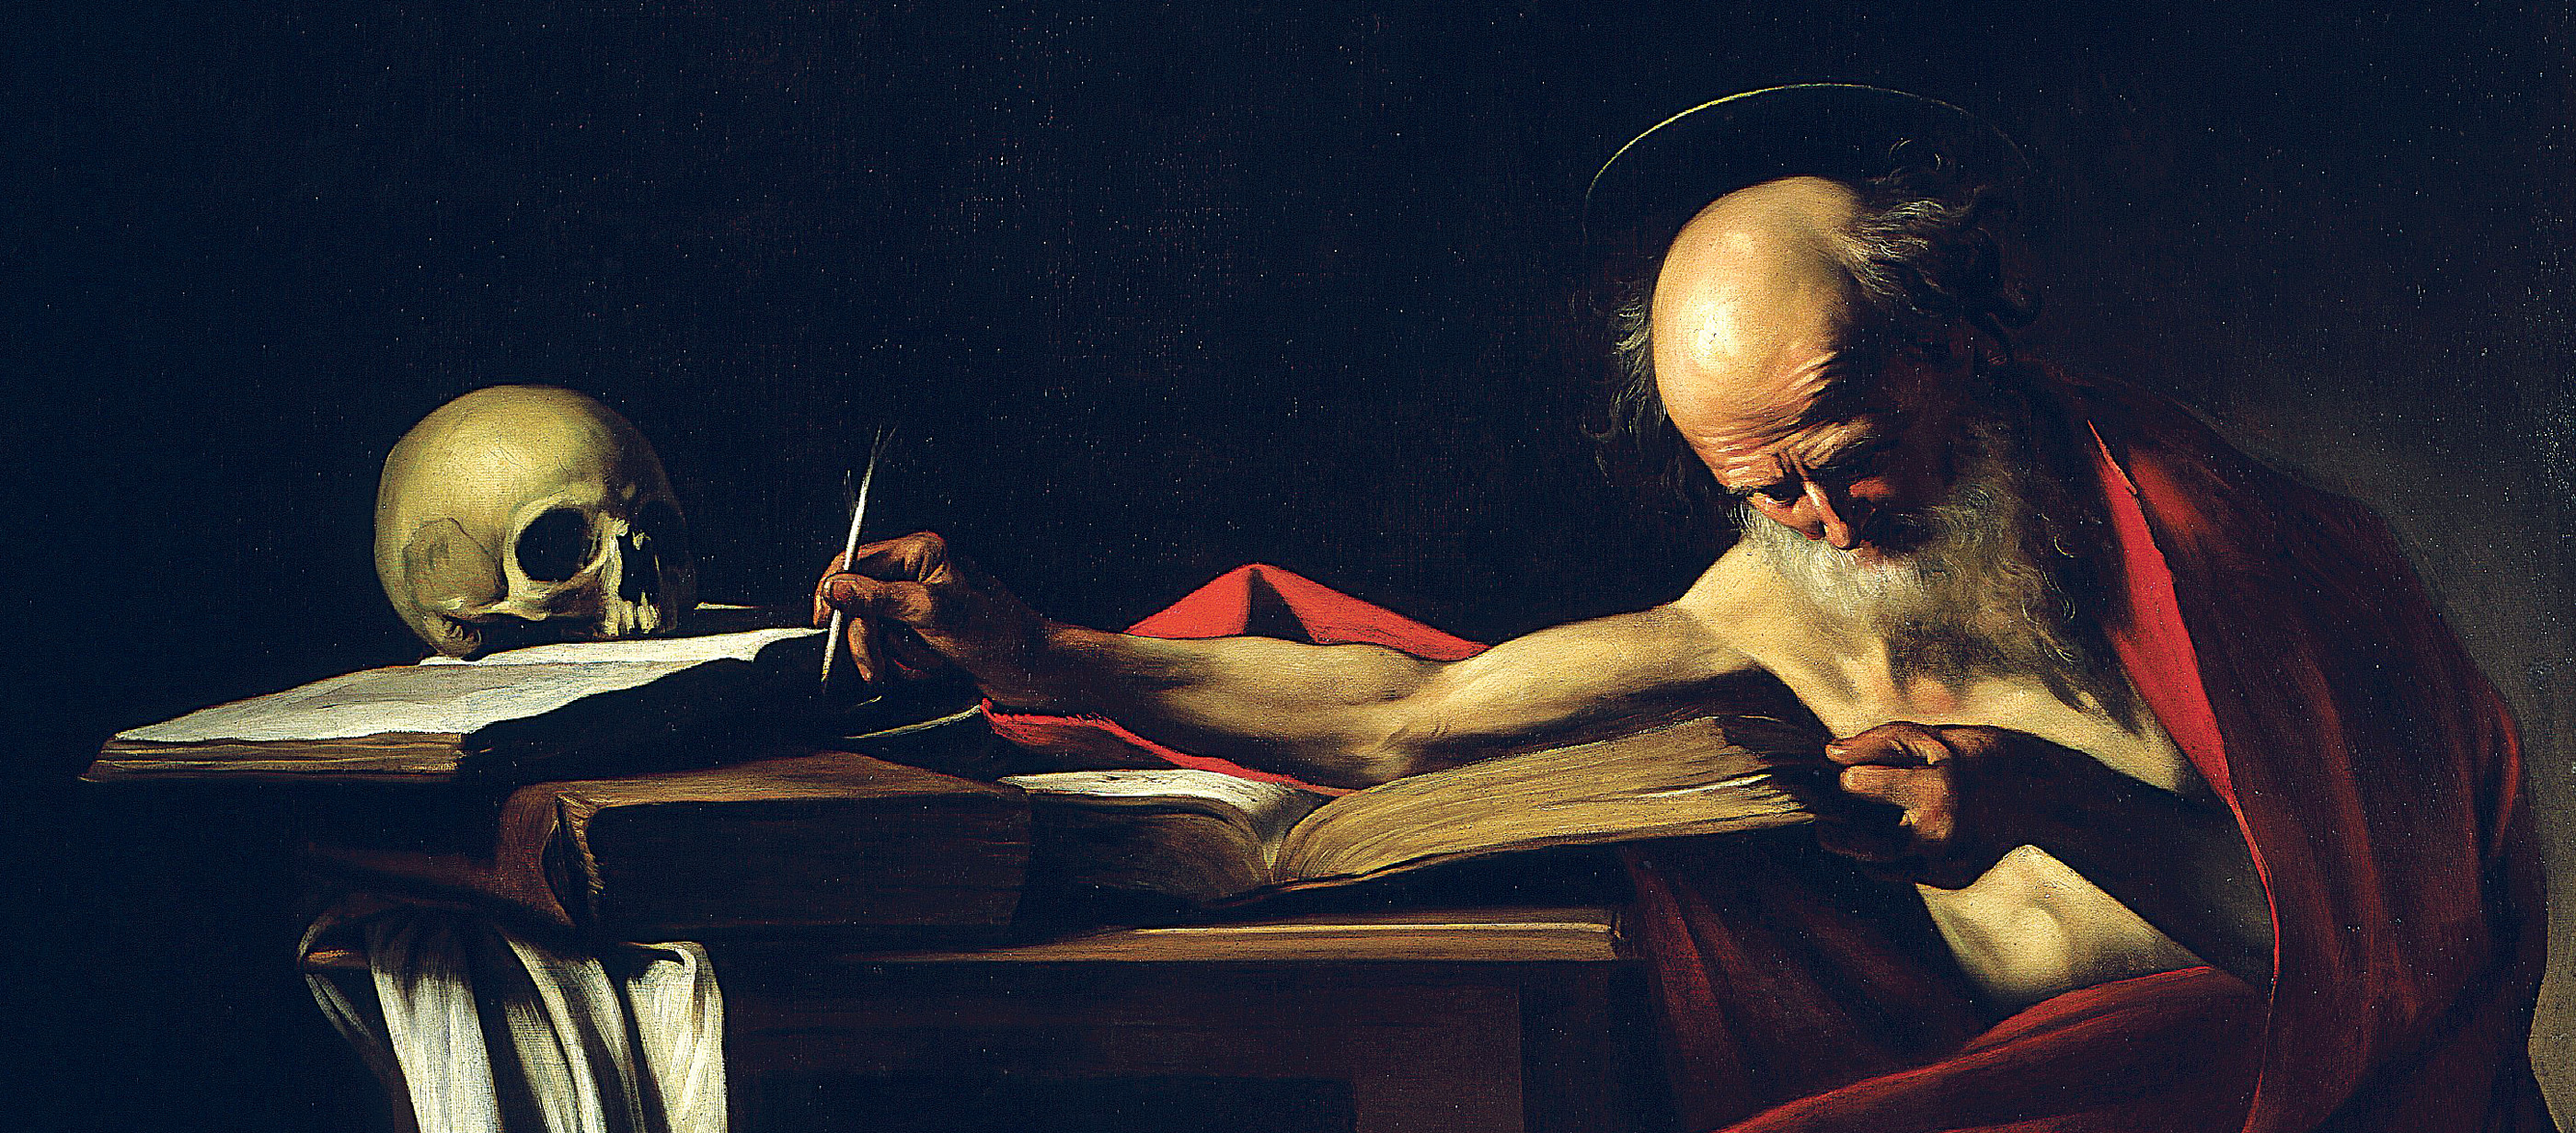 Saint Jerome Writing, by Michelangelo Caravaggio, 1606. Galleria Borghese, Rome, Italy.